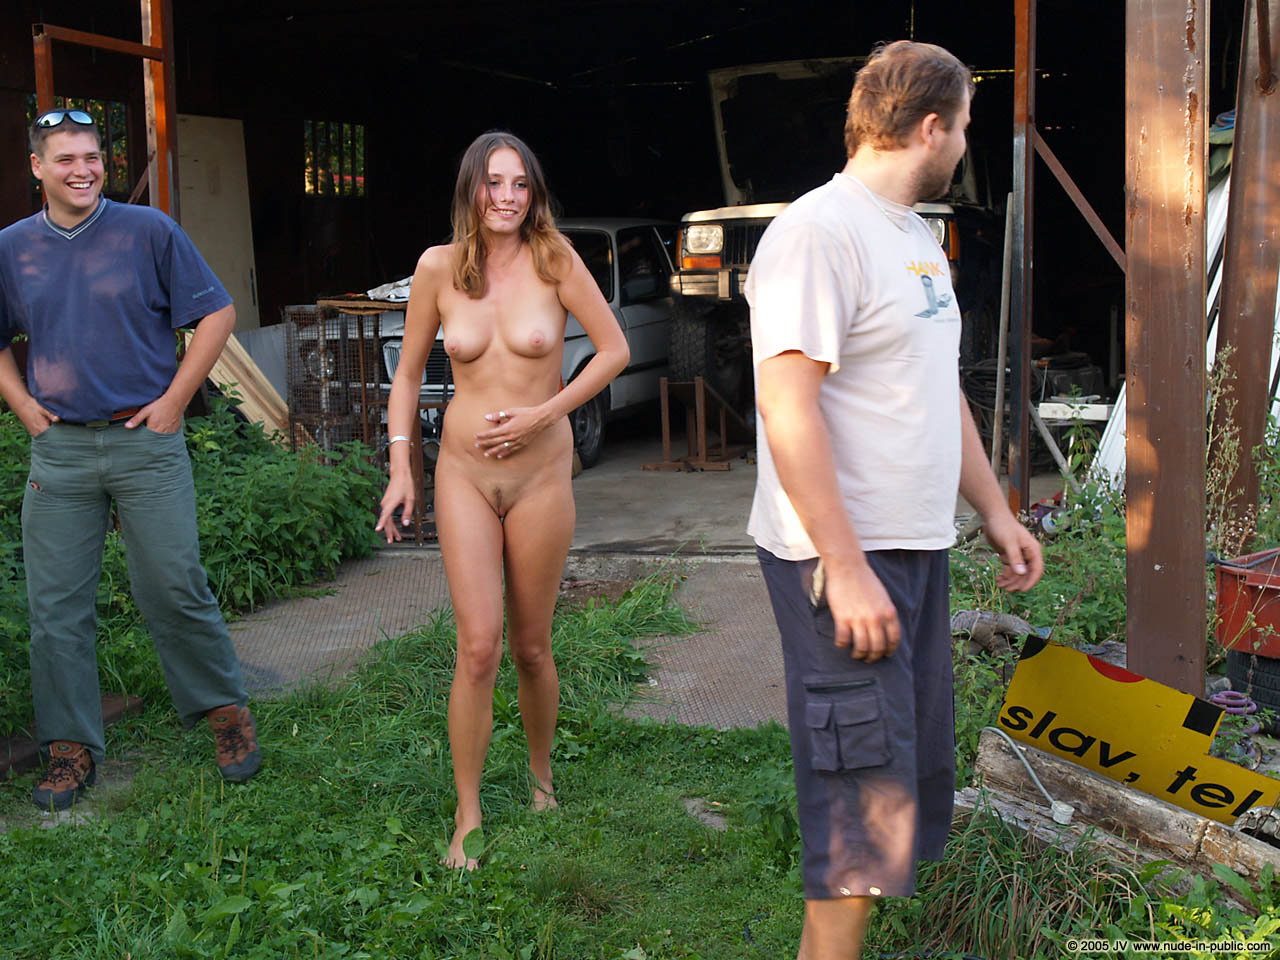 veronika-e-junkyard-cars-mechanic-nude-in-public-22